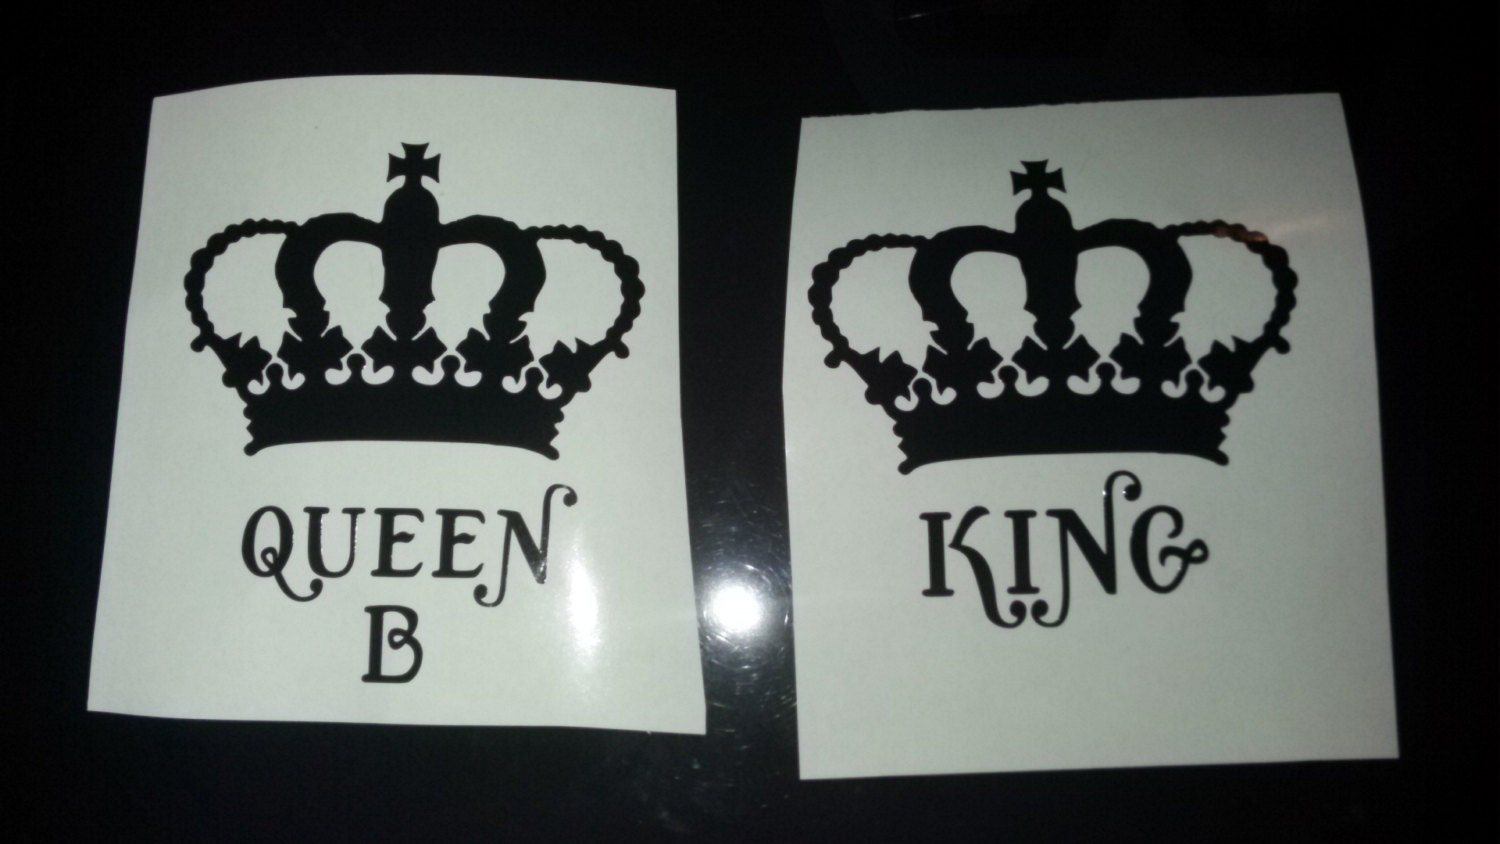 Heiness Decals Queen B Decal Crown Queen Decal Bumper